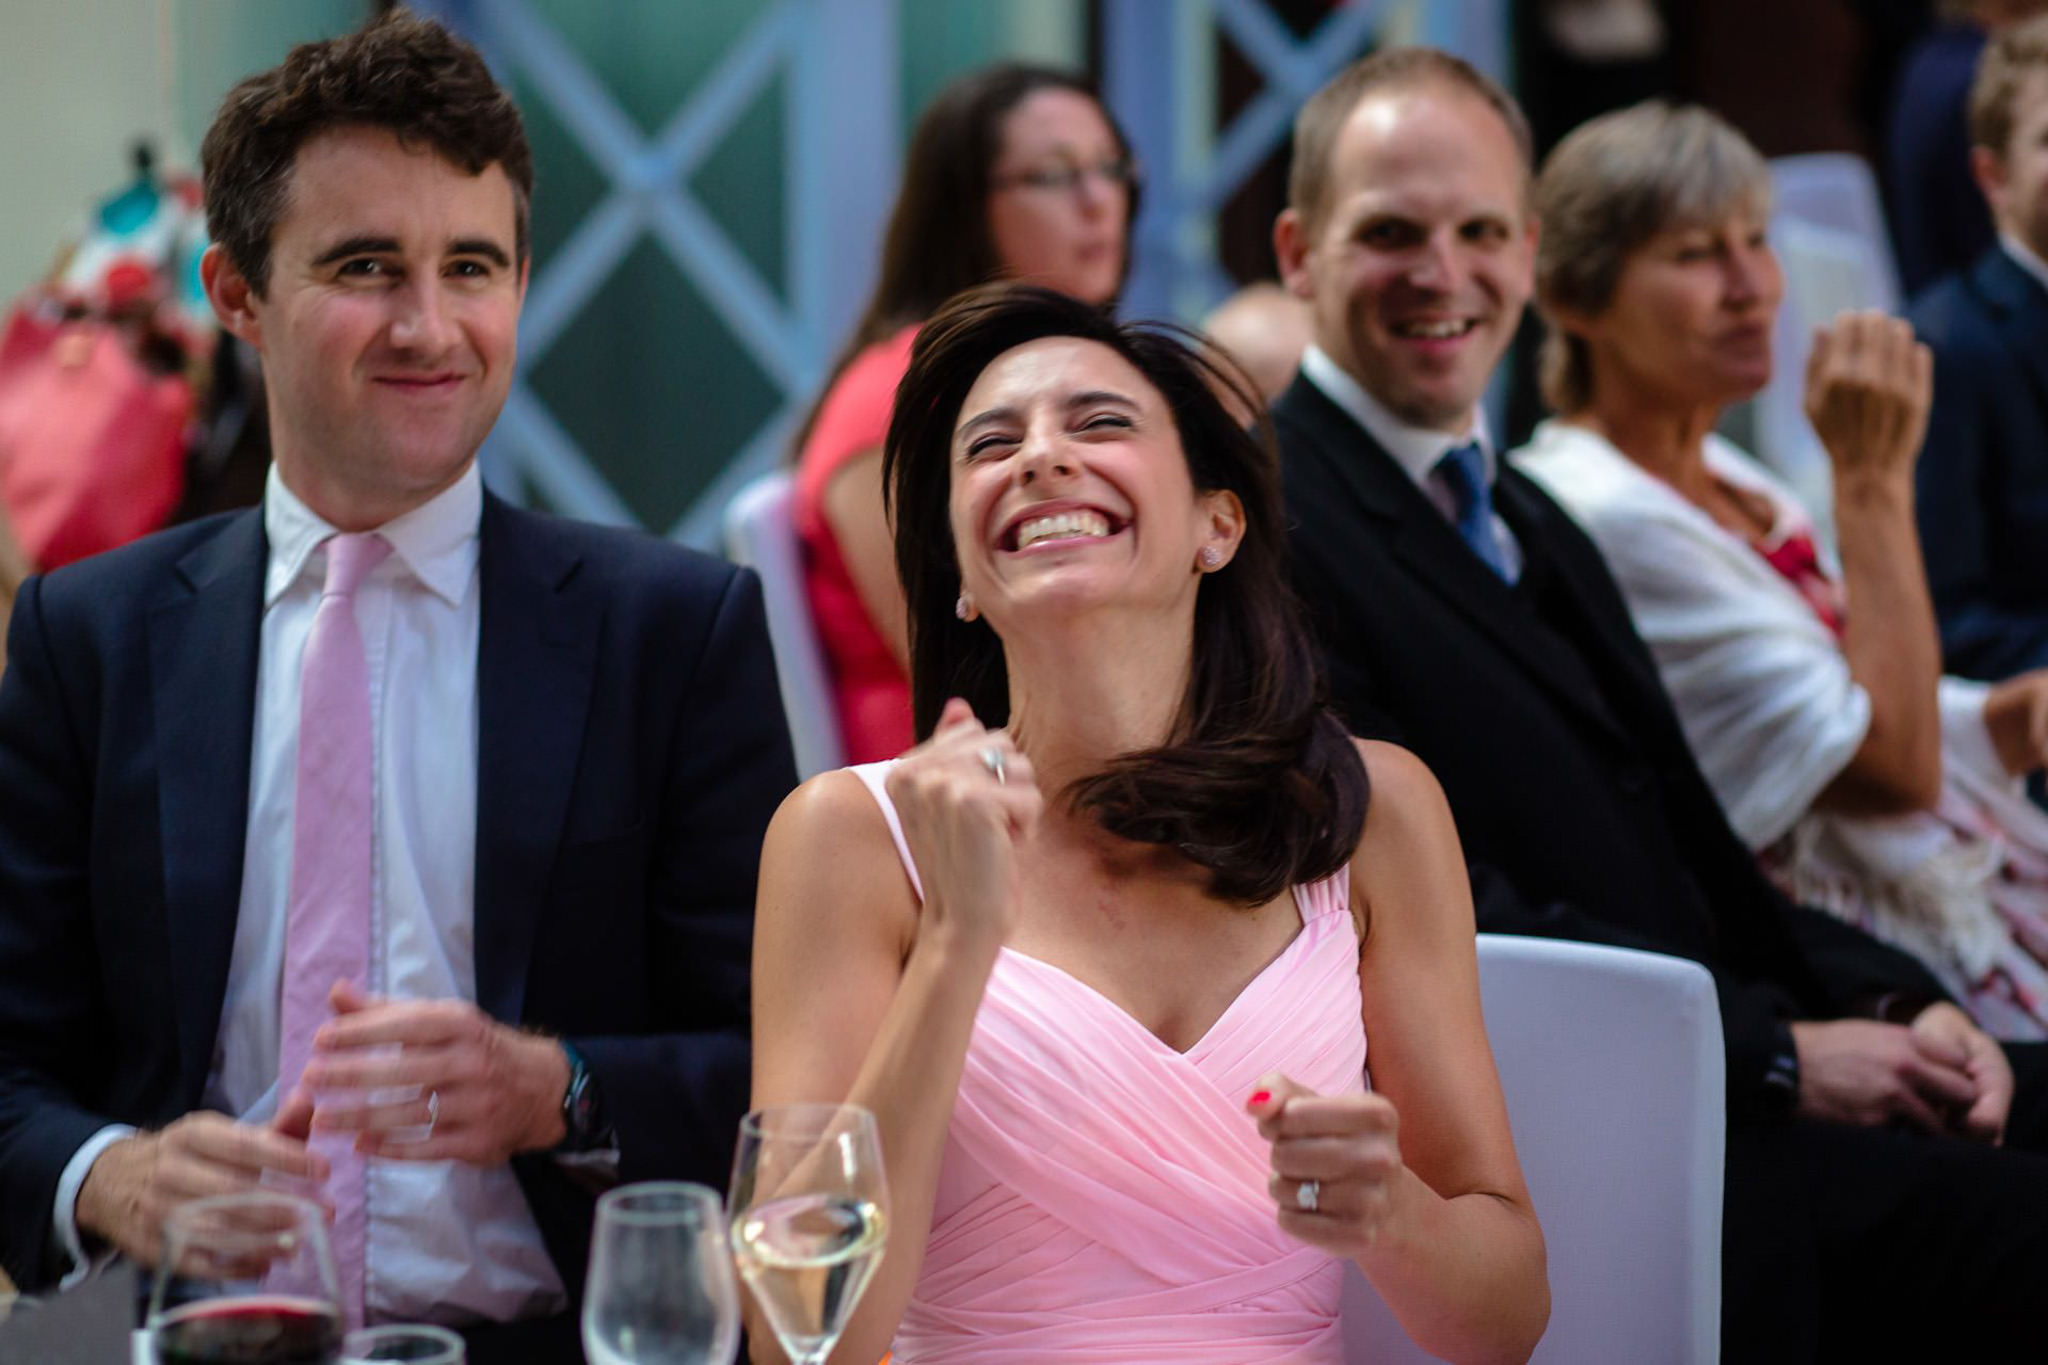 St. Pancras hotel wedding guests reaction